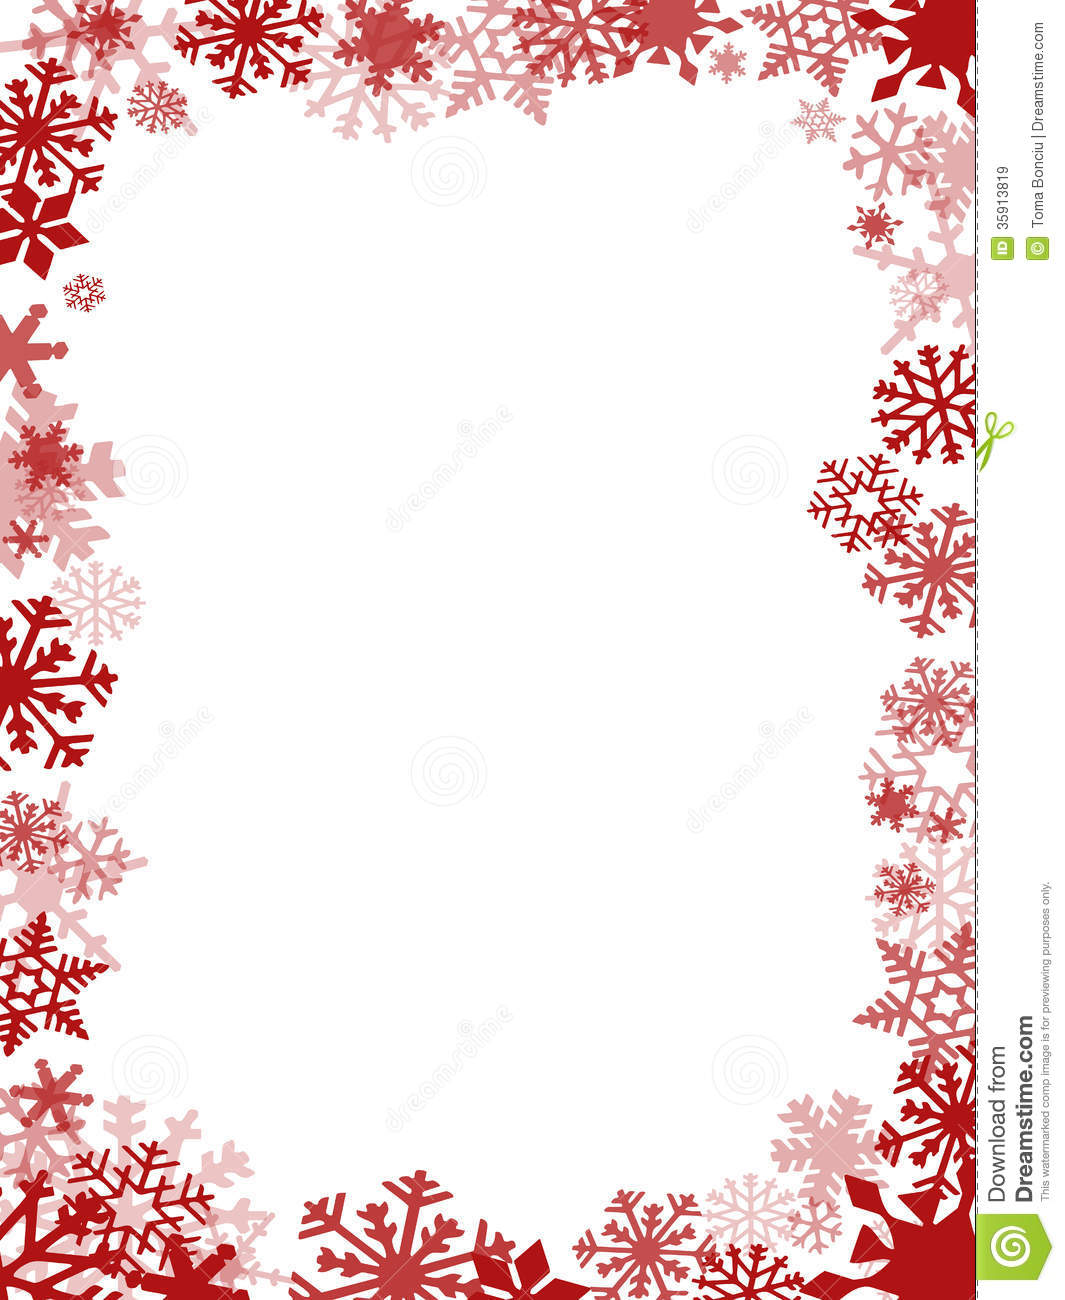 Christmas Card Border.Red Christmas Card Frame Stock Illustration Illustration Of